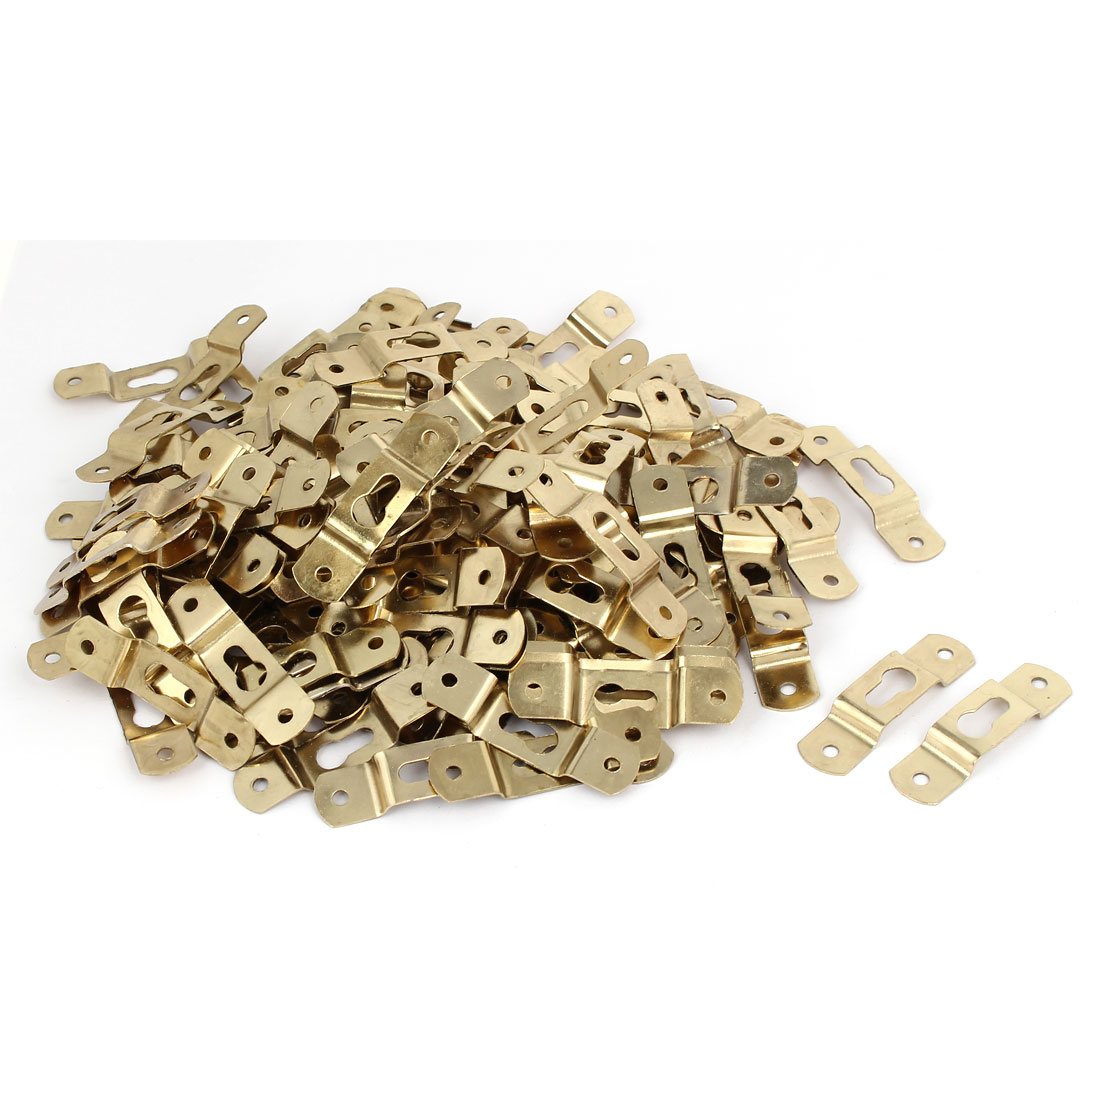 60mmx15mmx5mm Wall Hanging Picture Photo Frame Hidden Hook Gold Tone 200pcs